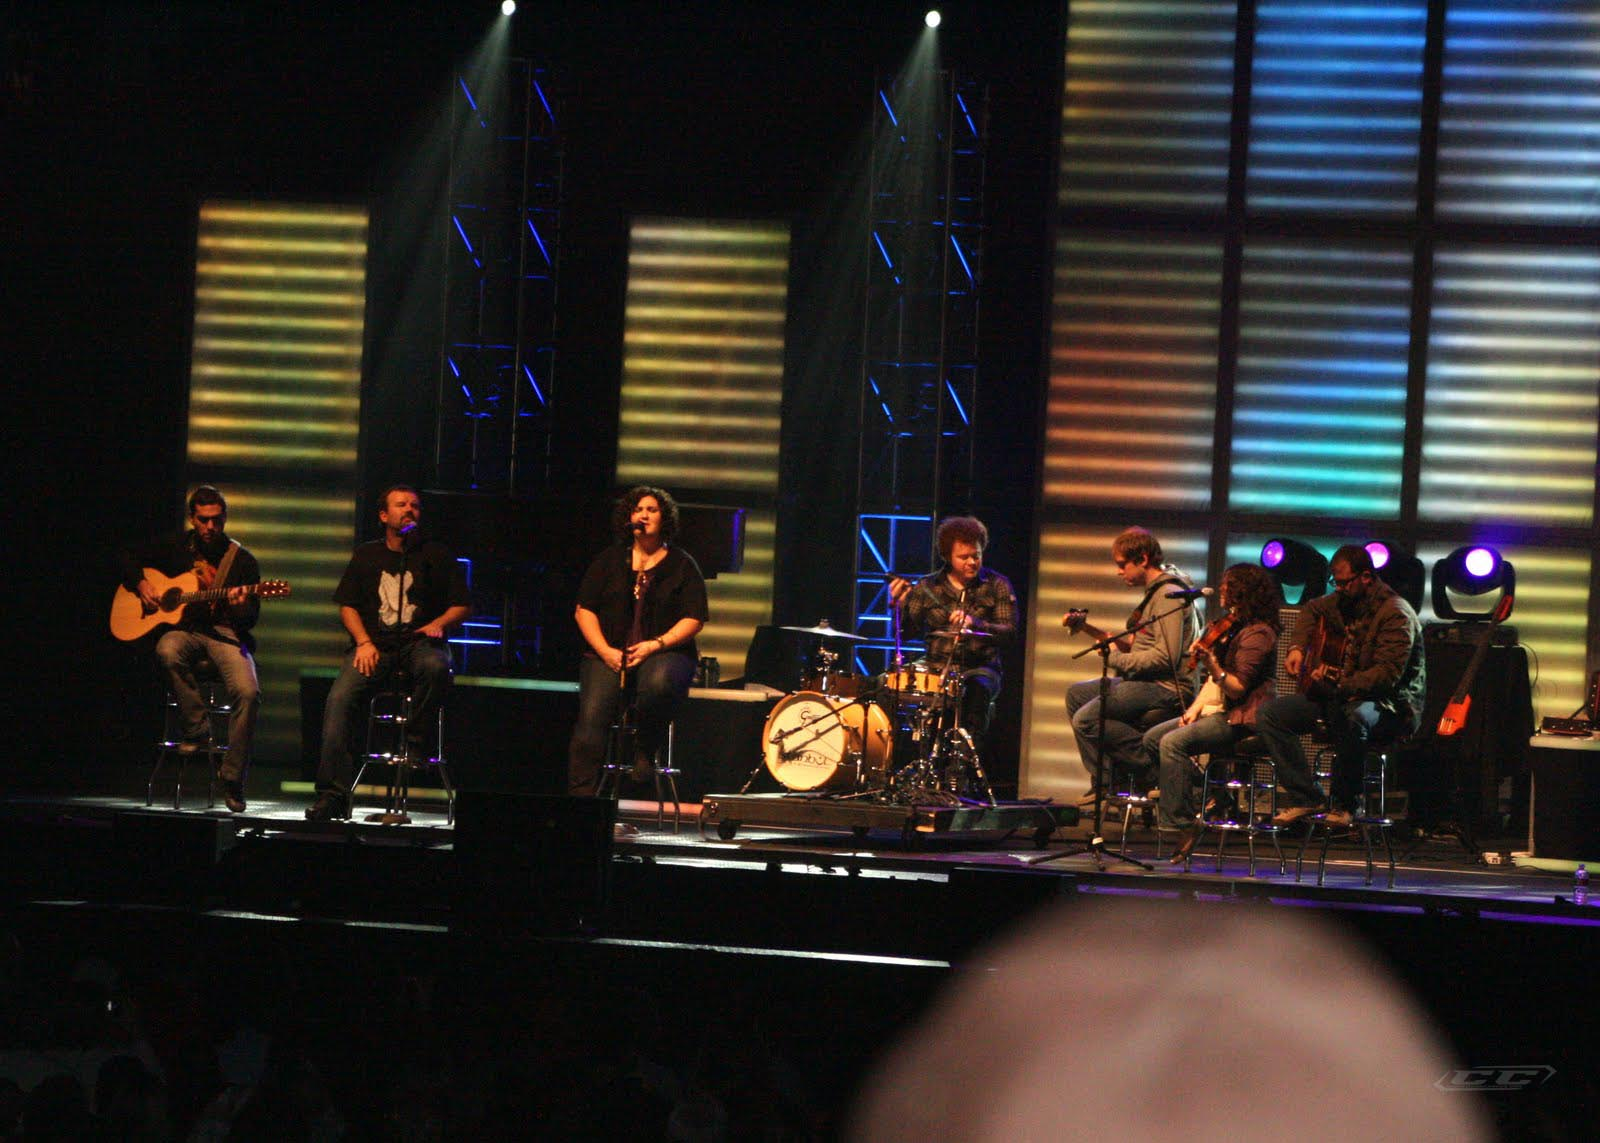 Casting Crowns - The Acoustic Sessions Volume 1 2013 live performance on stage